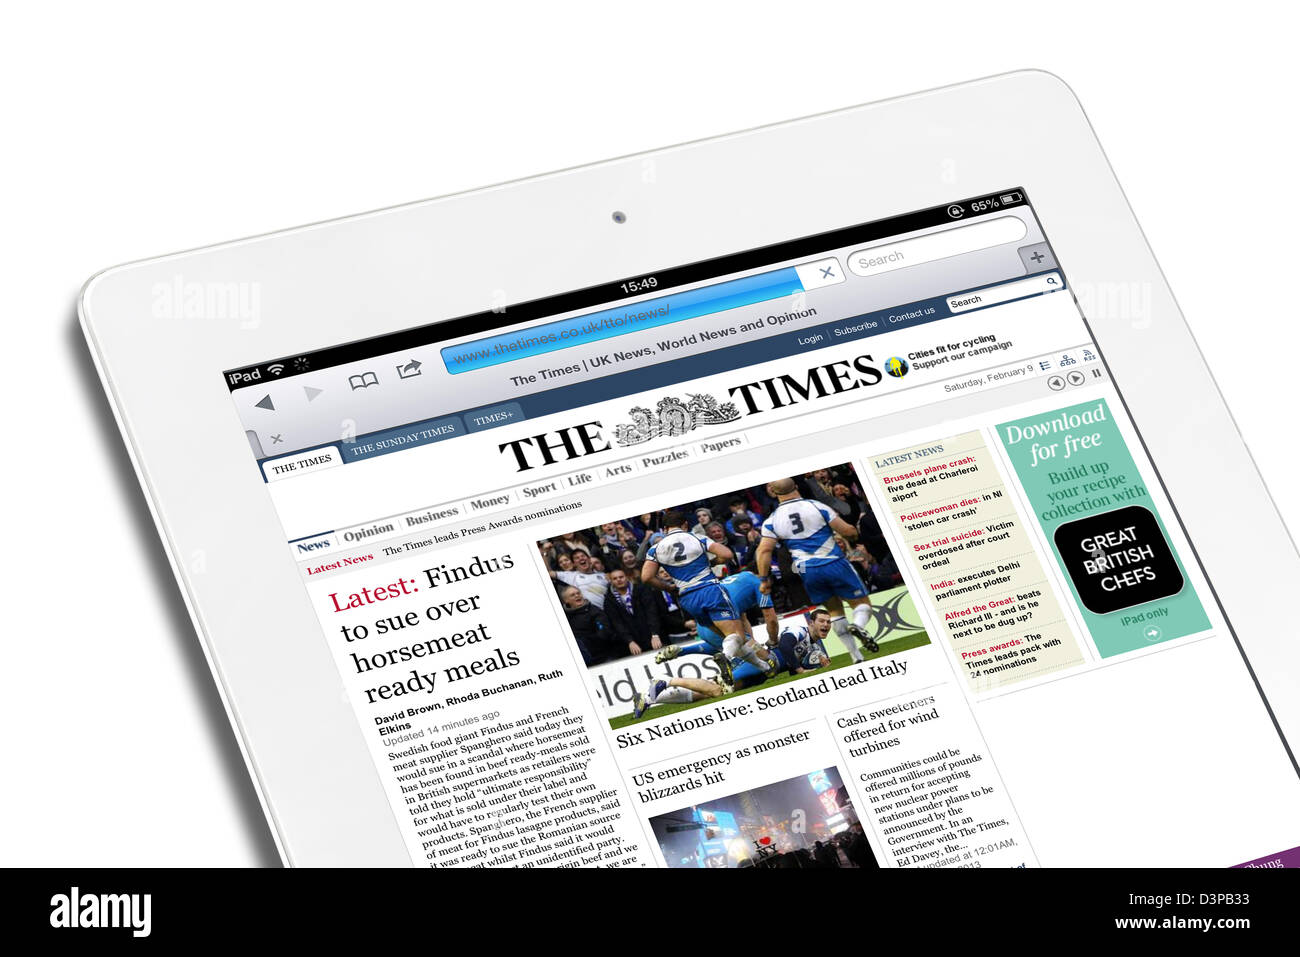 Reading the internet edition of the Times newspaper on a white 4th Generation iPad, UK - Stock Image